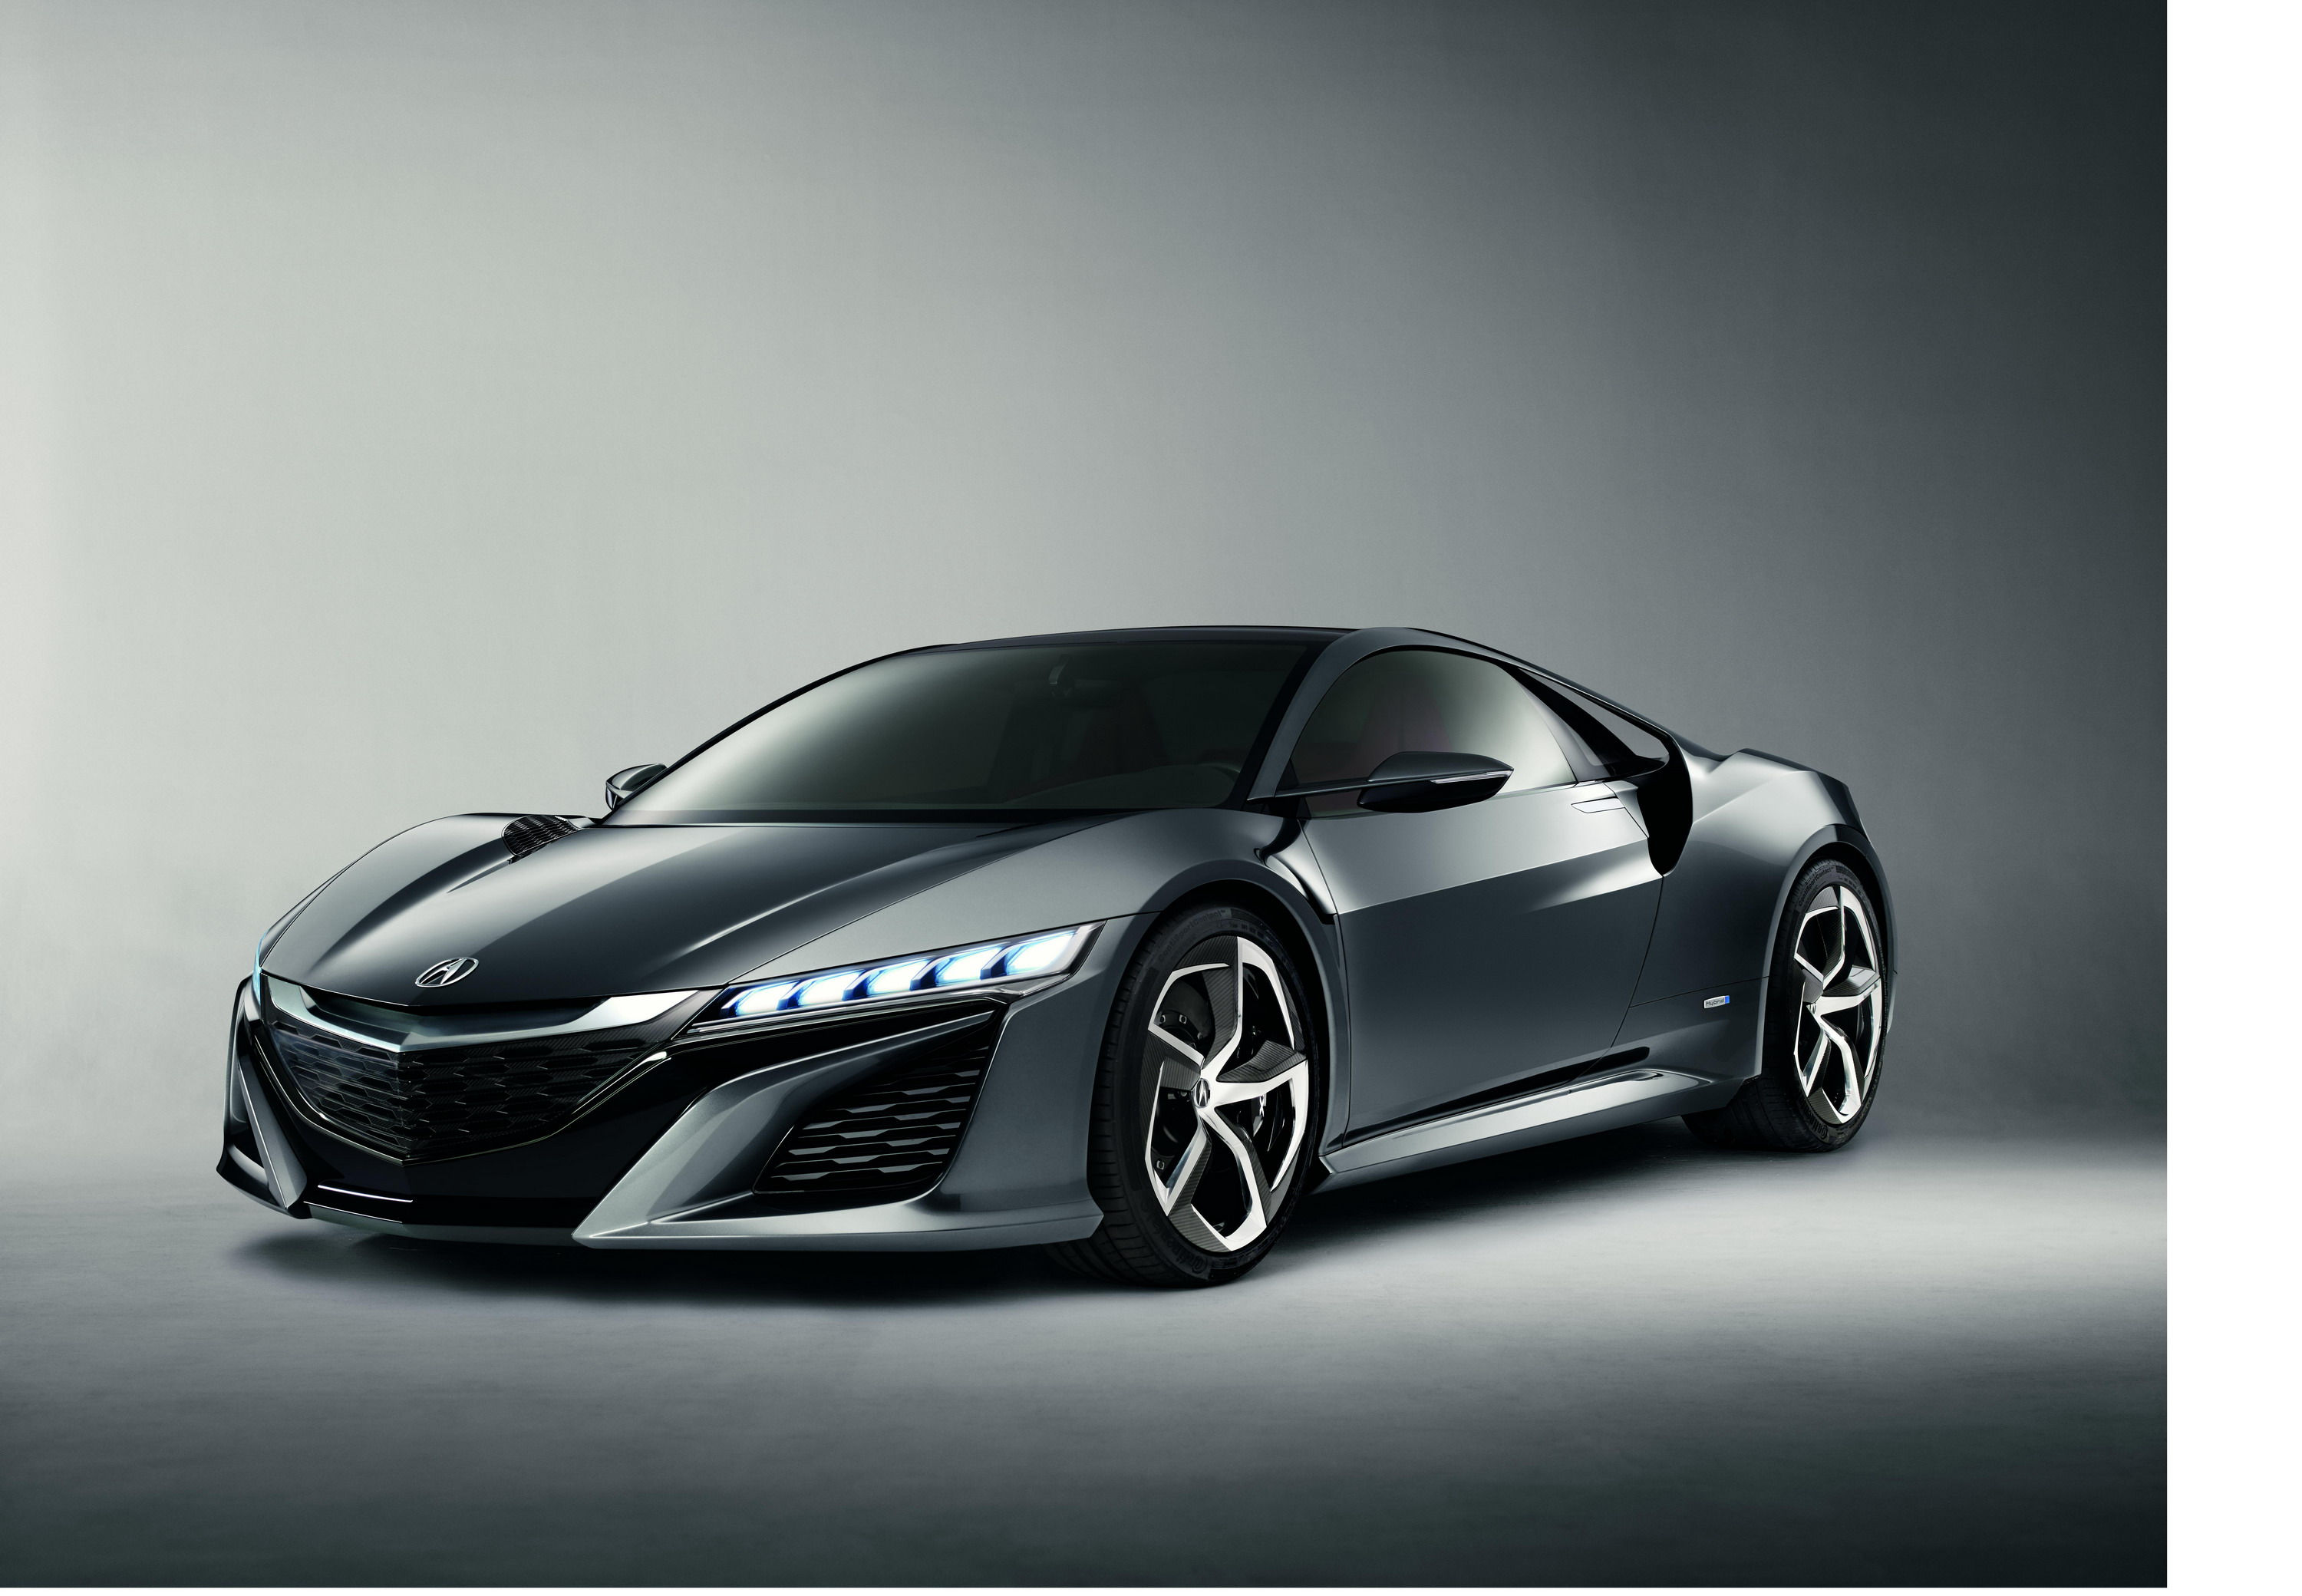 2013 Acura NSX Concept | Top Speed